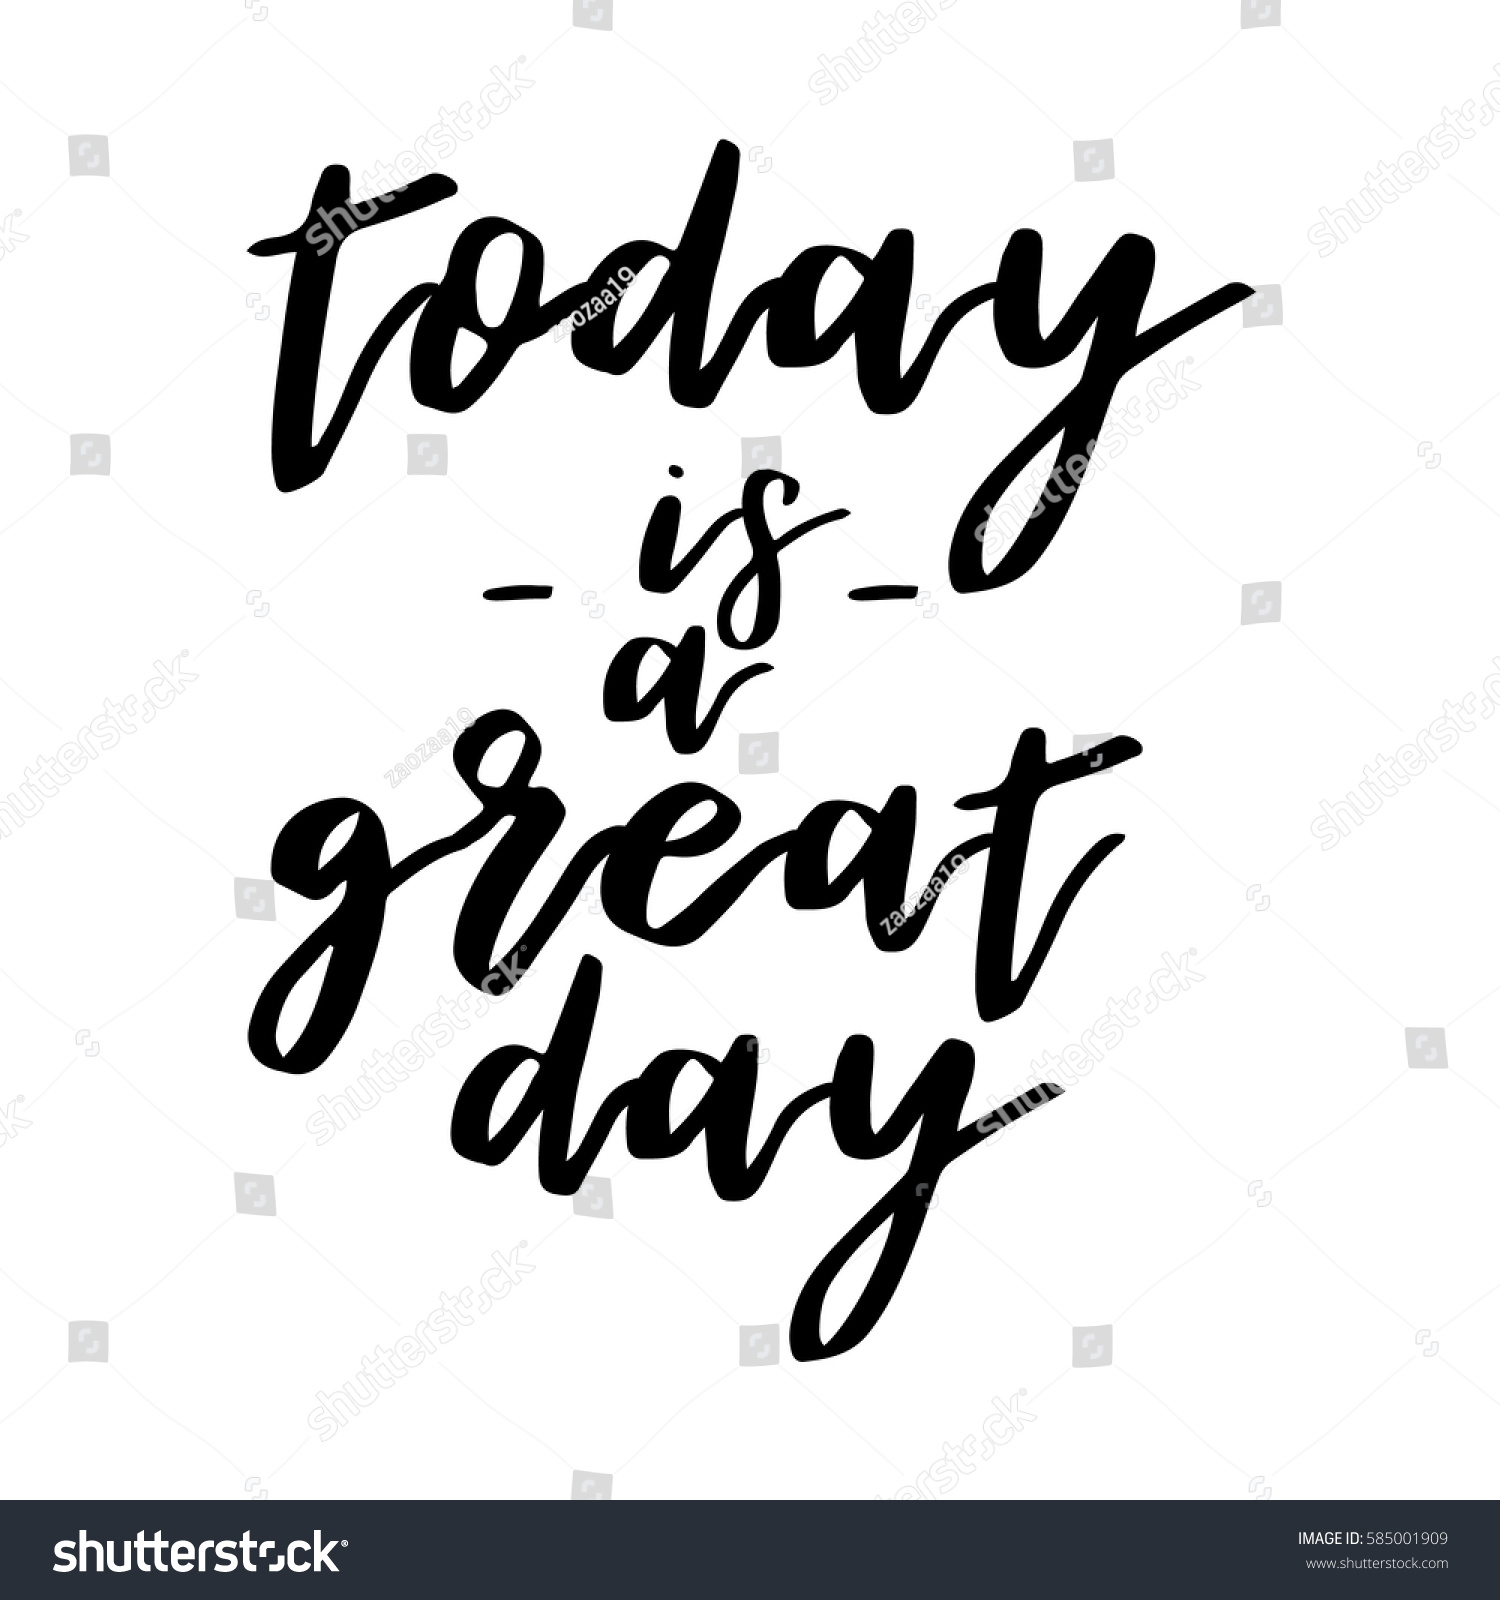 Great Day Quotes Today Great Day Inspiration Quotes Lettering Stock Vector